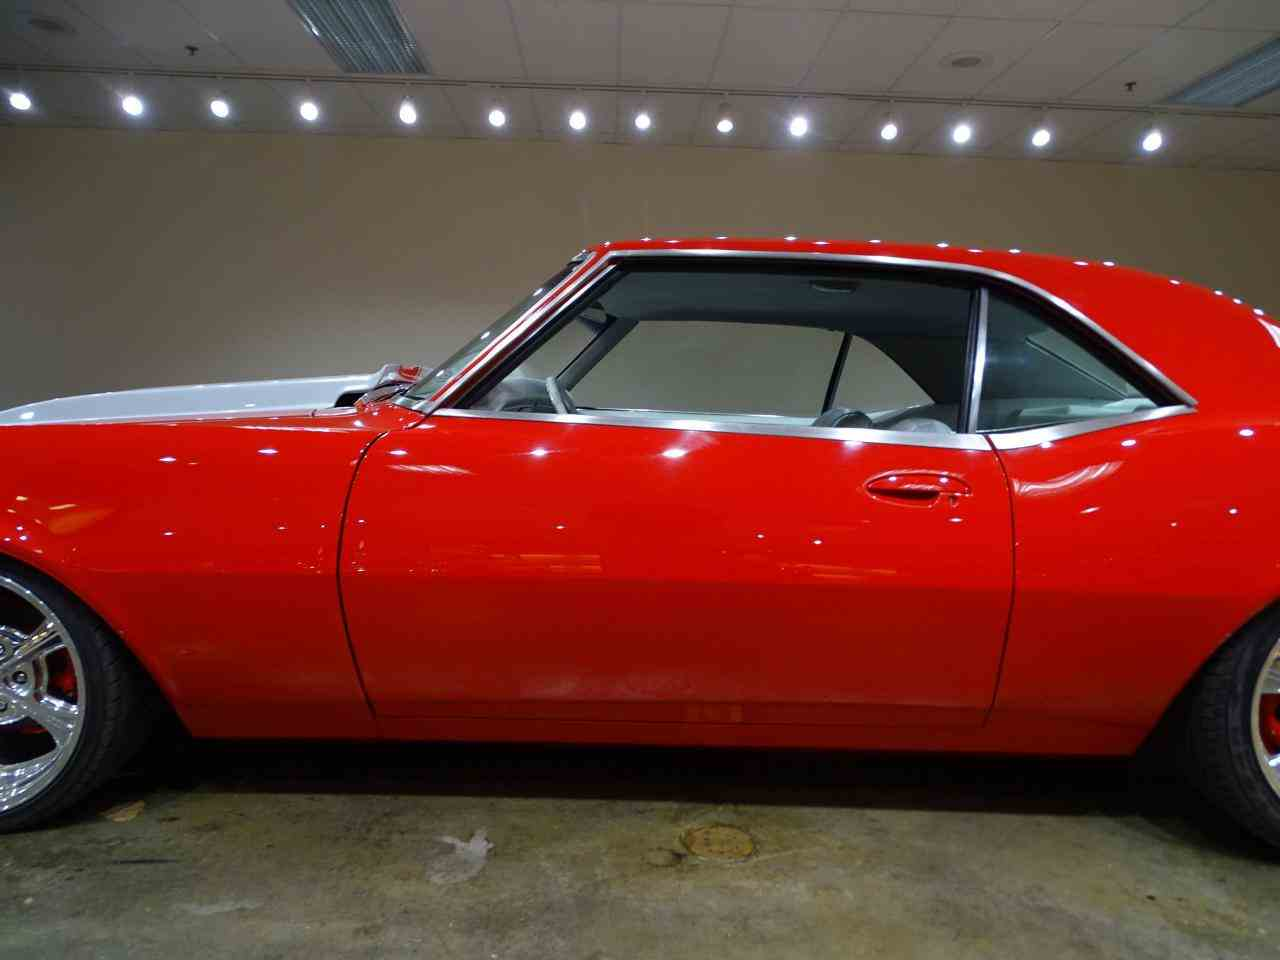 Large Picture of '68 Camaro located in O'Fallon Illinois - $140,000.00 Offered by Gateway Classic Cars - St. Louis - MZE5